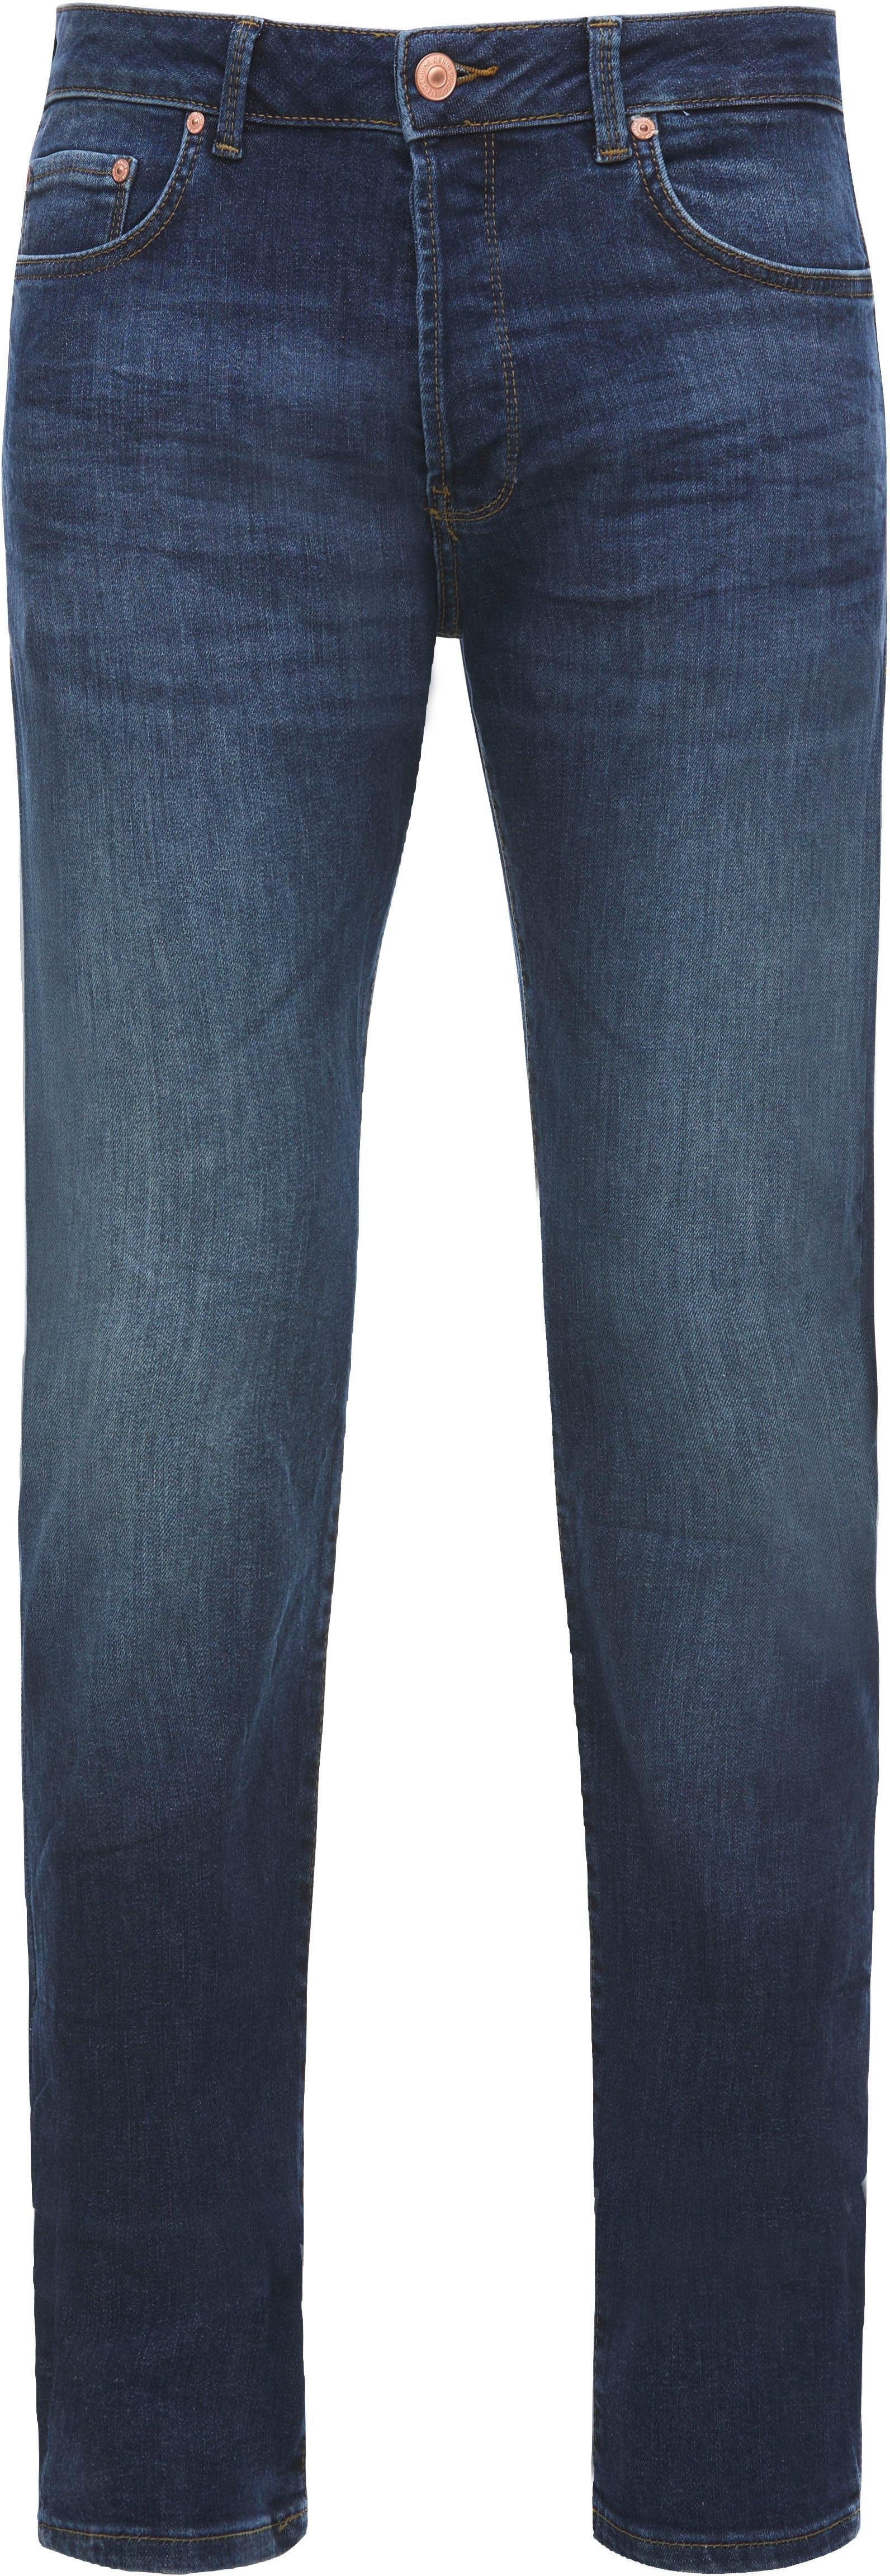 LTB straight jeans »HOLLYWOOD D« nu online kopen bij OTTO